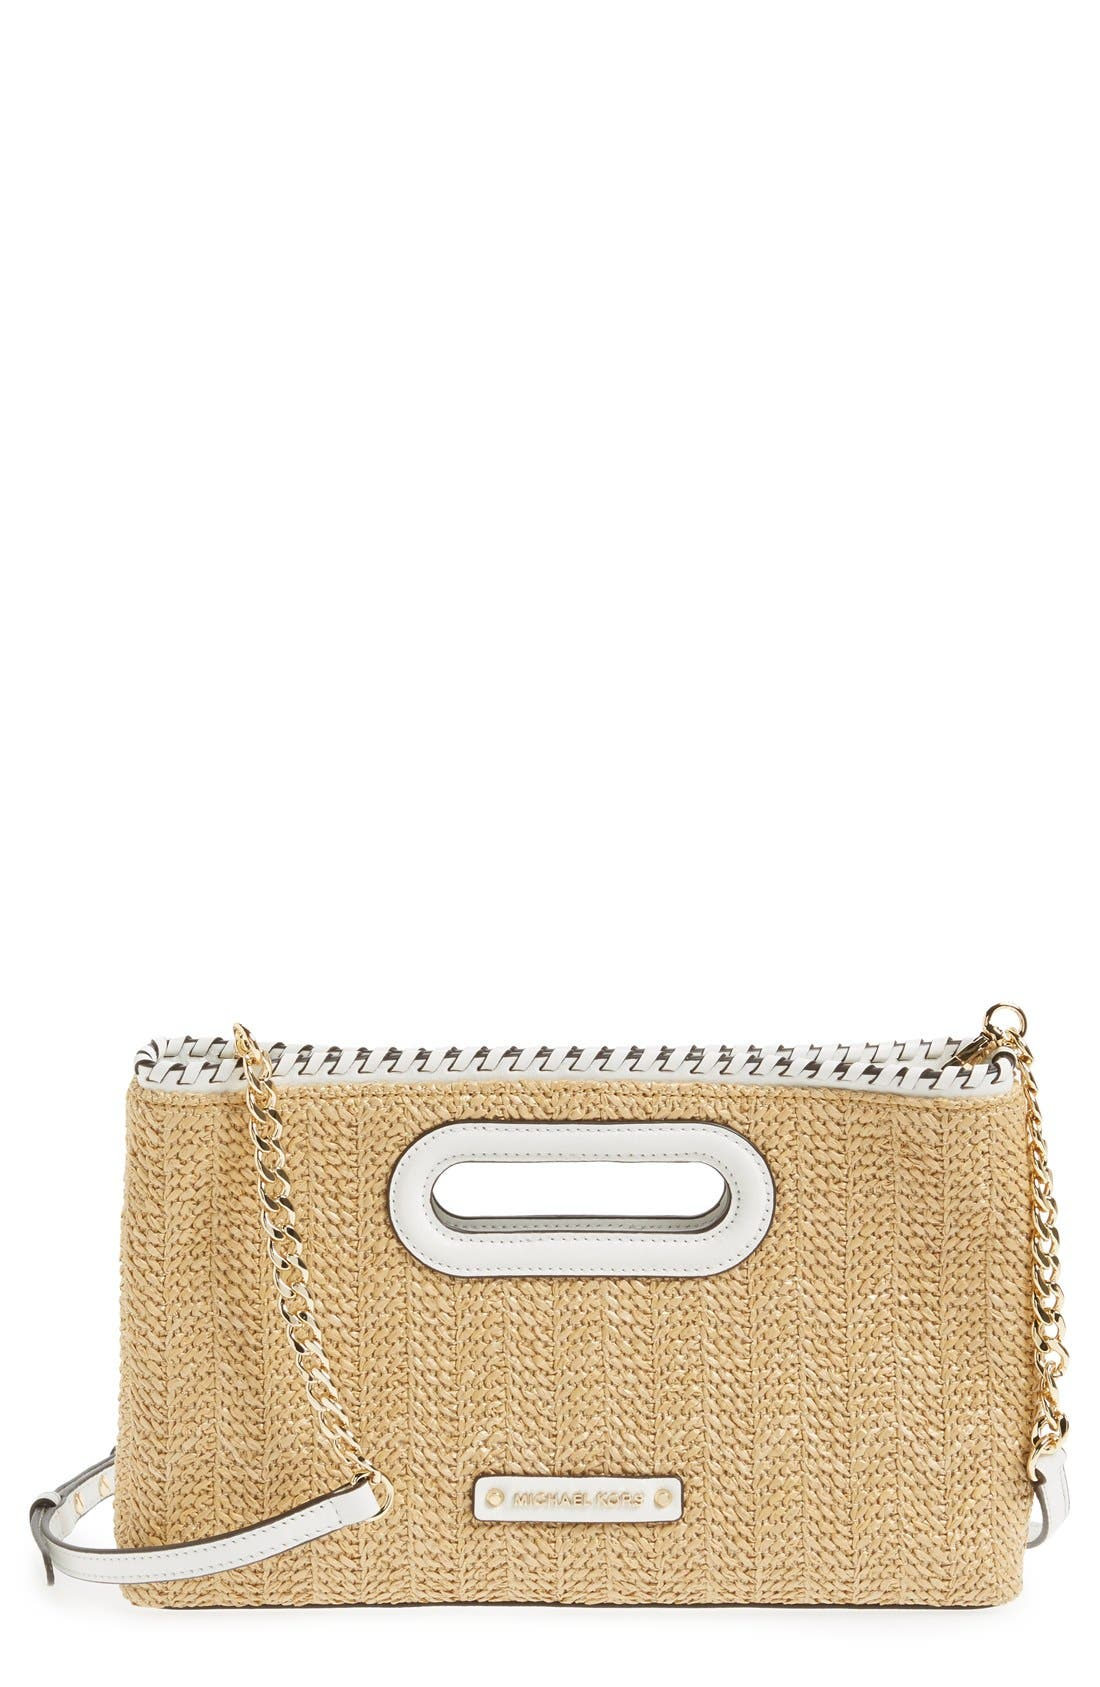 'Large Rosalie' Straw Clutch,                             Main thumbnail 1, color,                             100